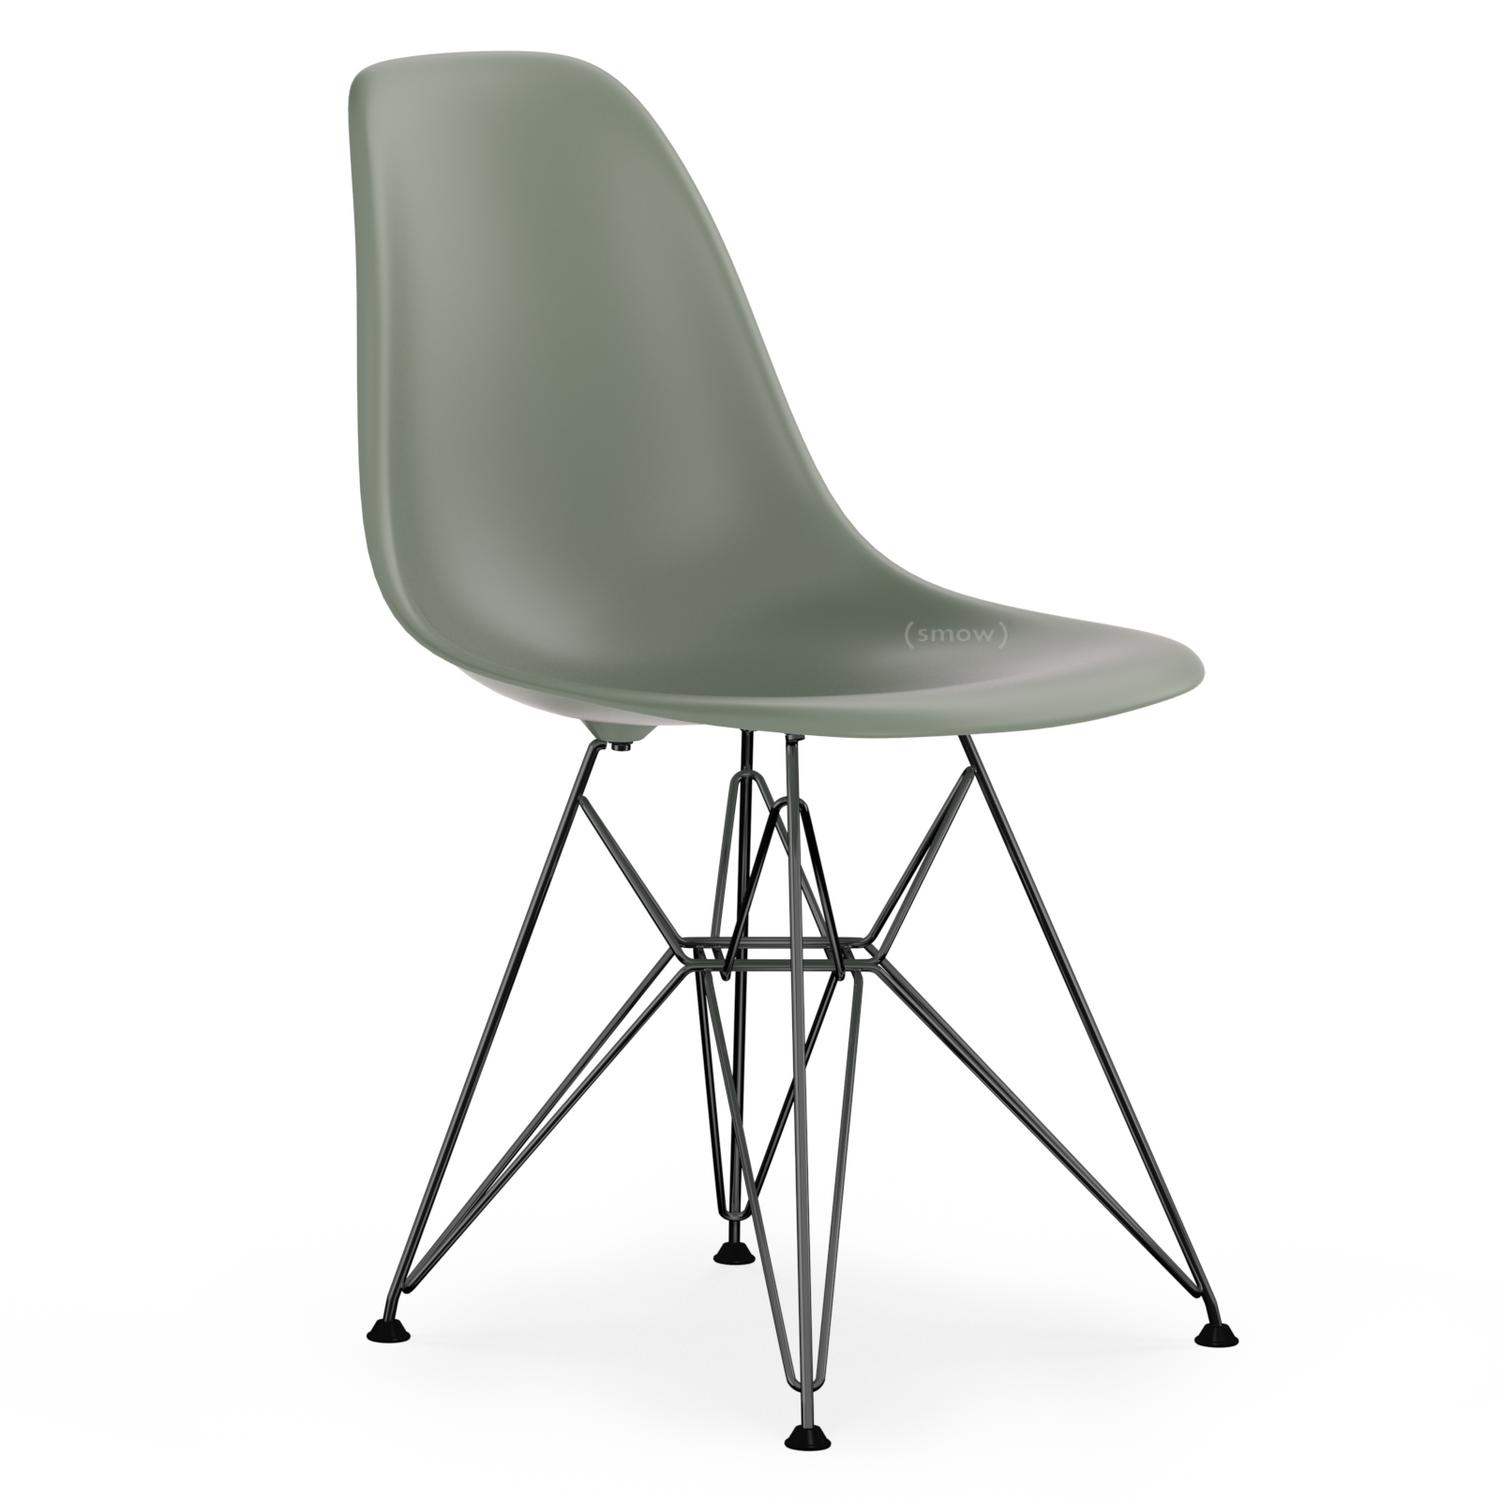 vitra eames plastic side chair dsr moss grey without. Black Bedroom Furniture Sets. Home Design Ideas